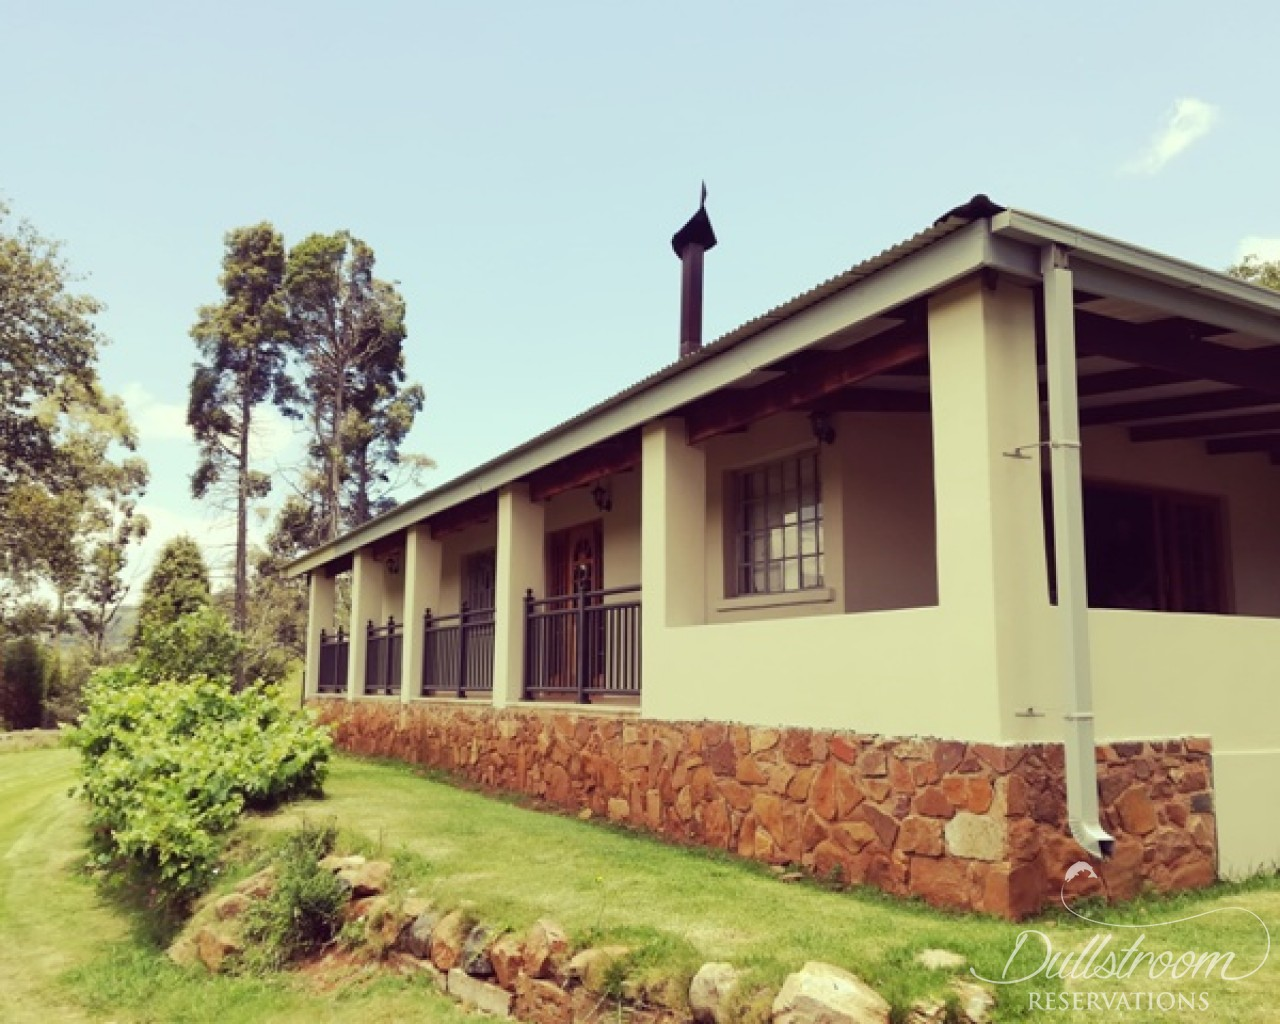 Willow creek accommodation in dullstroom dullstroom for Willow creek mansion